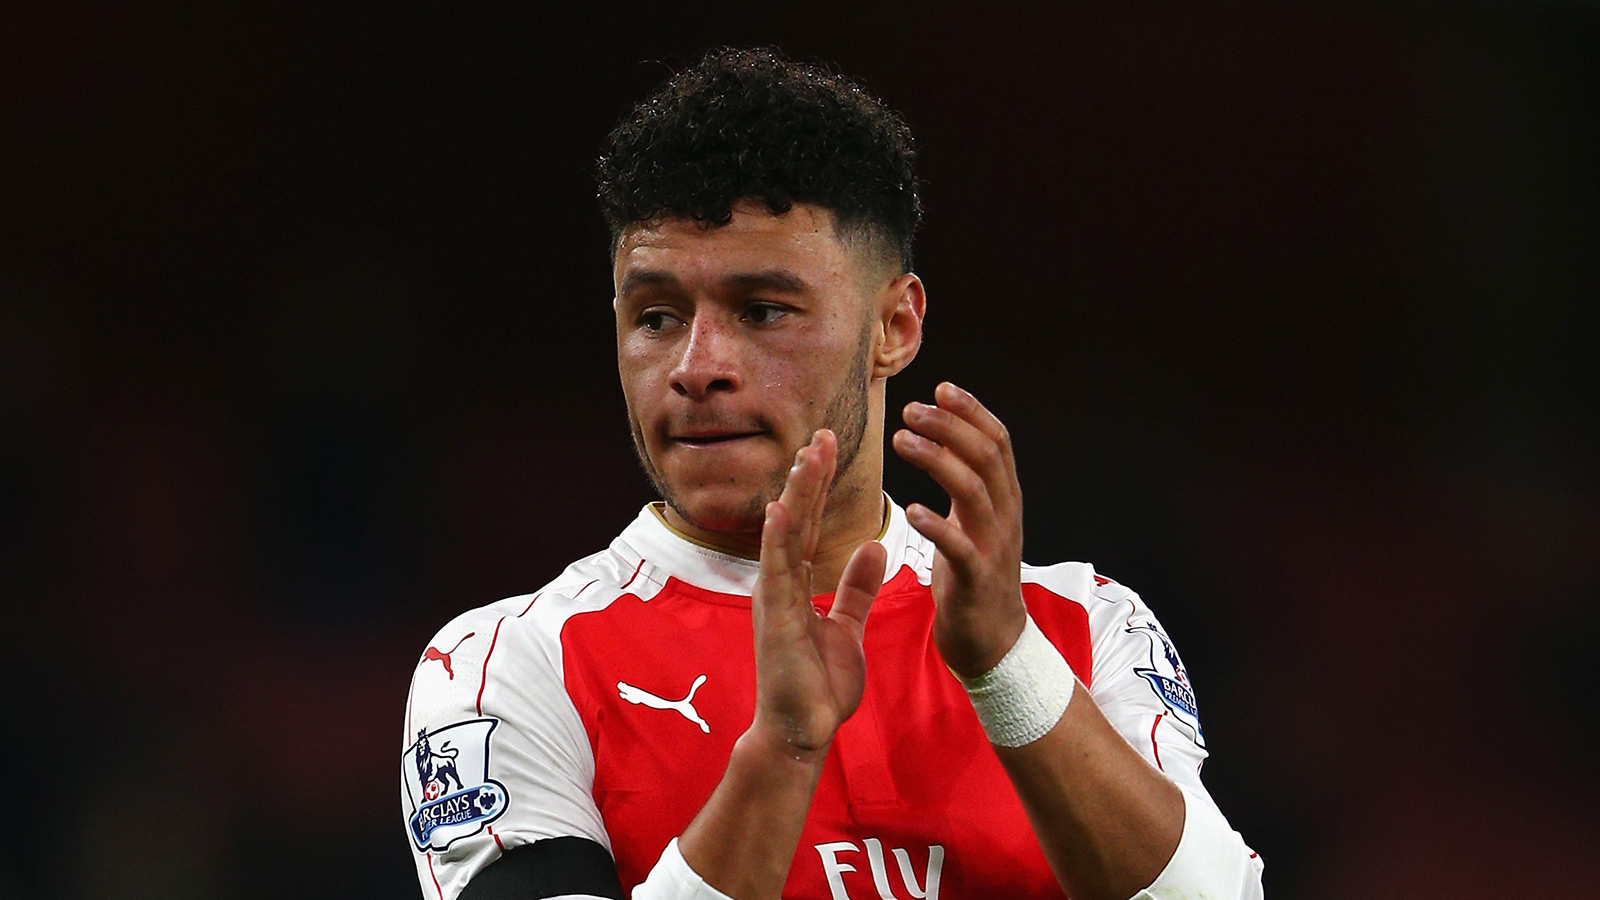 Oxlade-Chamberlain predicts 'hiccups' before Arsenal title glory